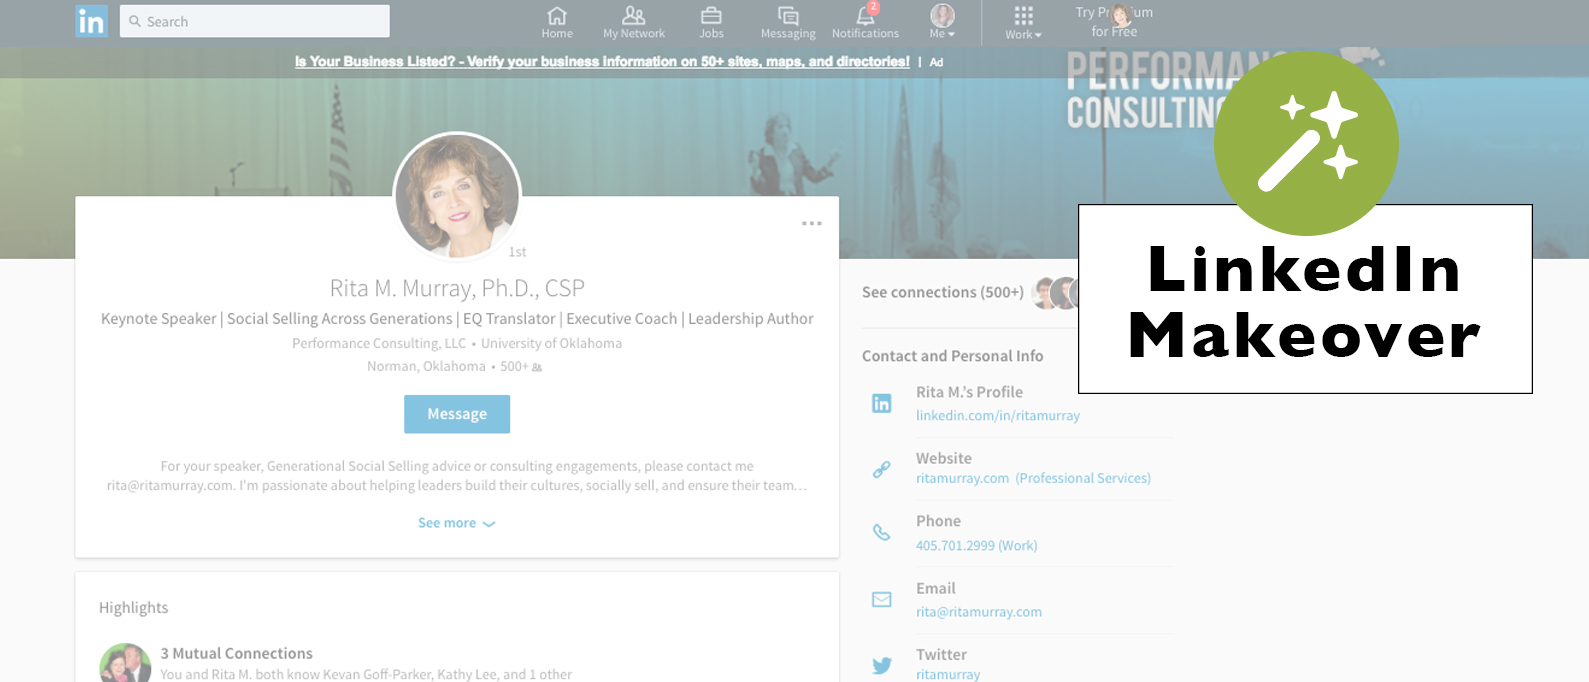 performance consulting linkedin makeover